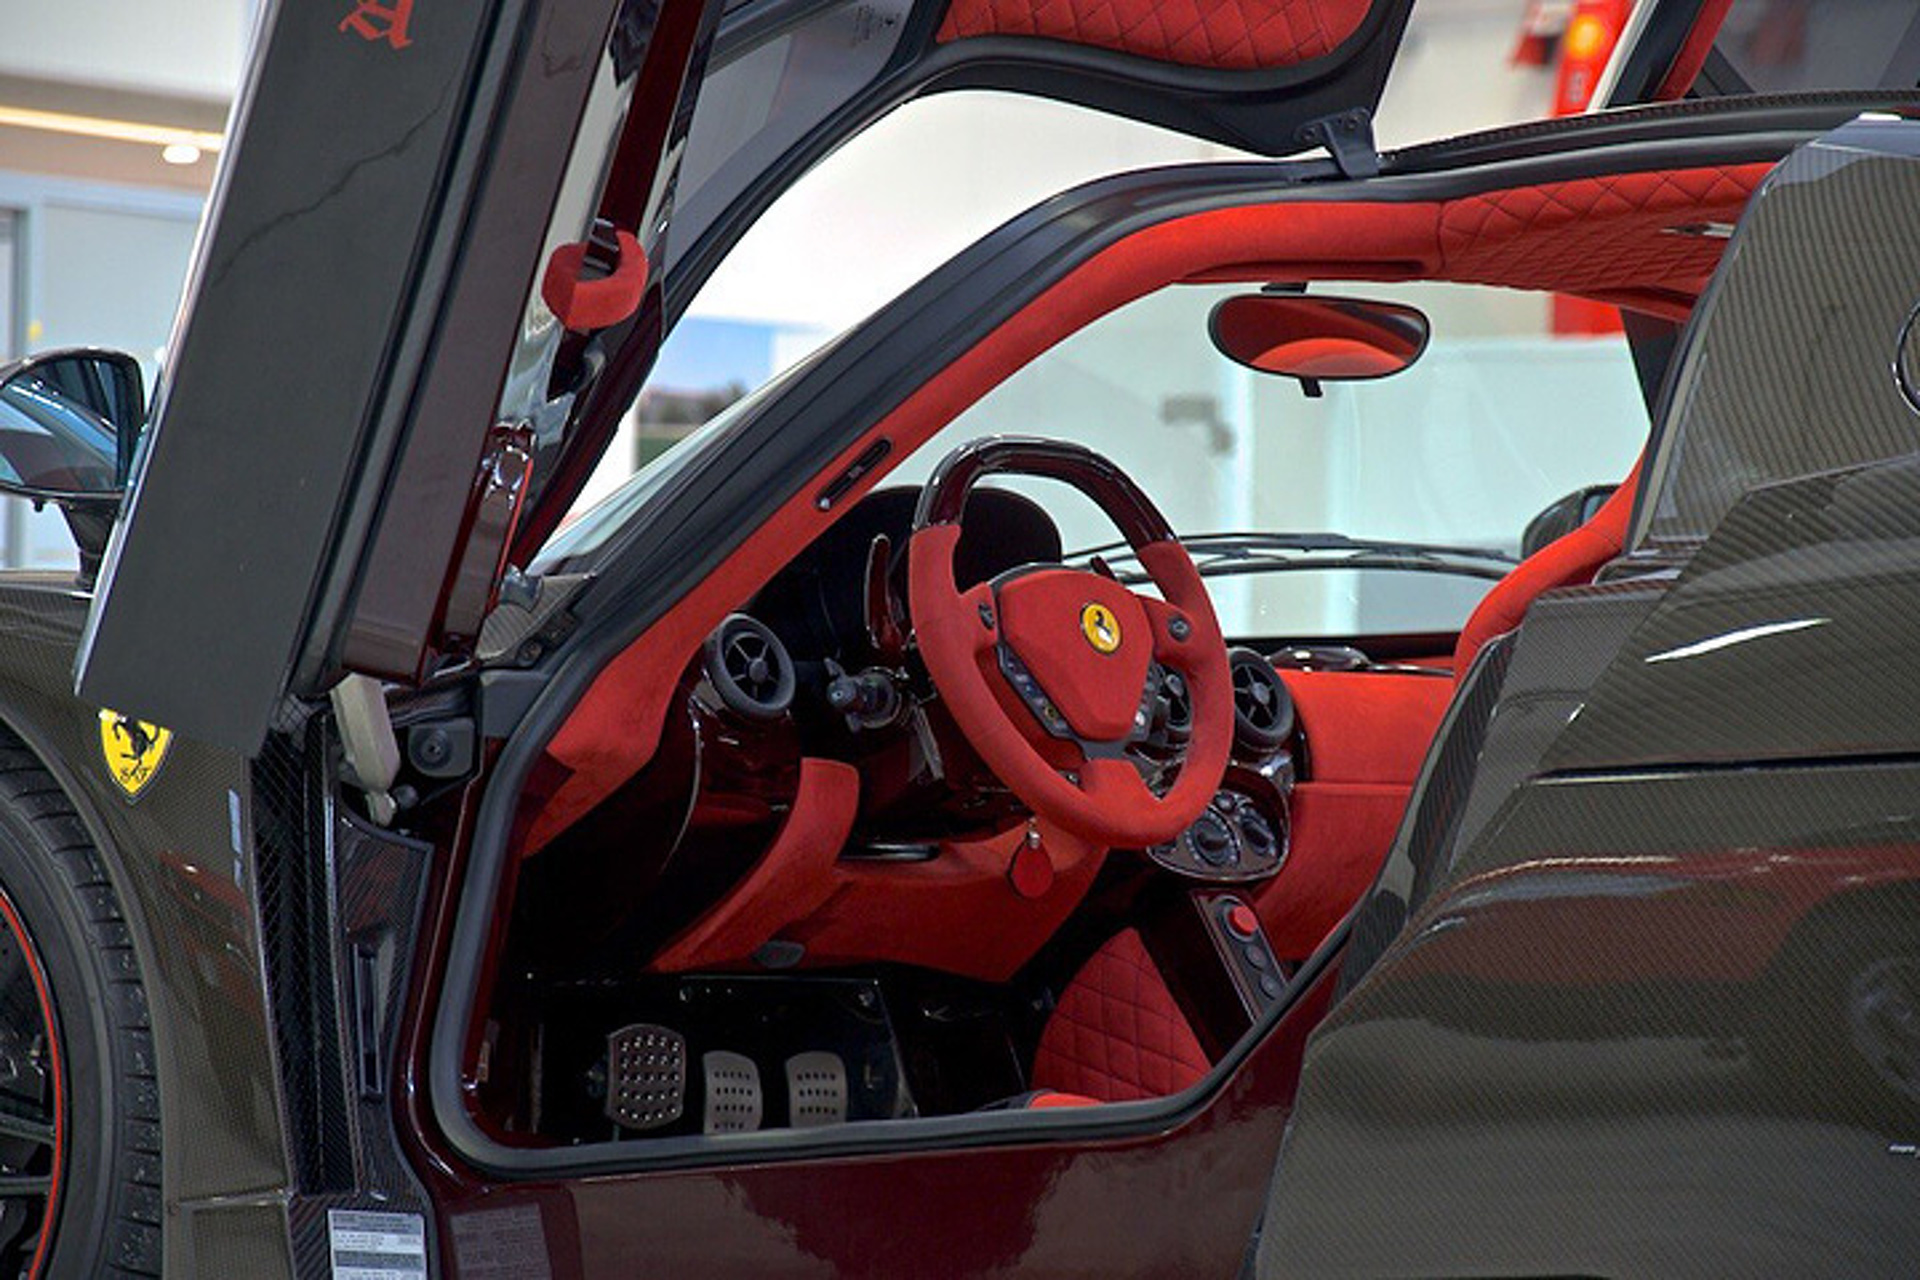 The World's Only Bare Carbon Ferrari Enzo is Up for Sale